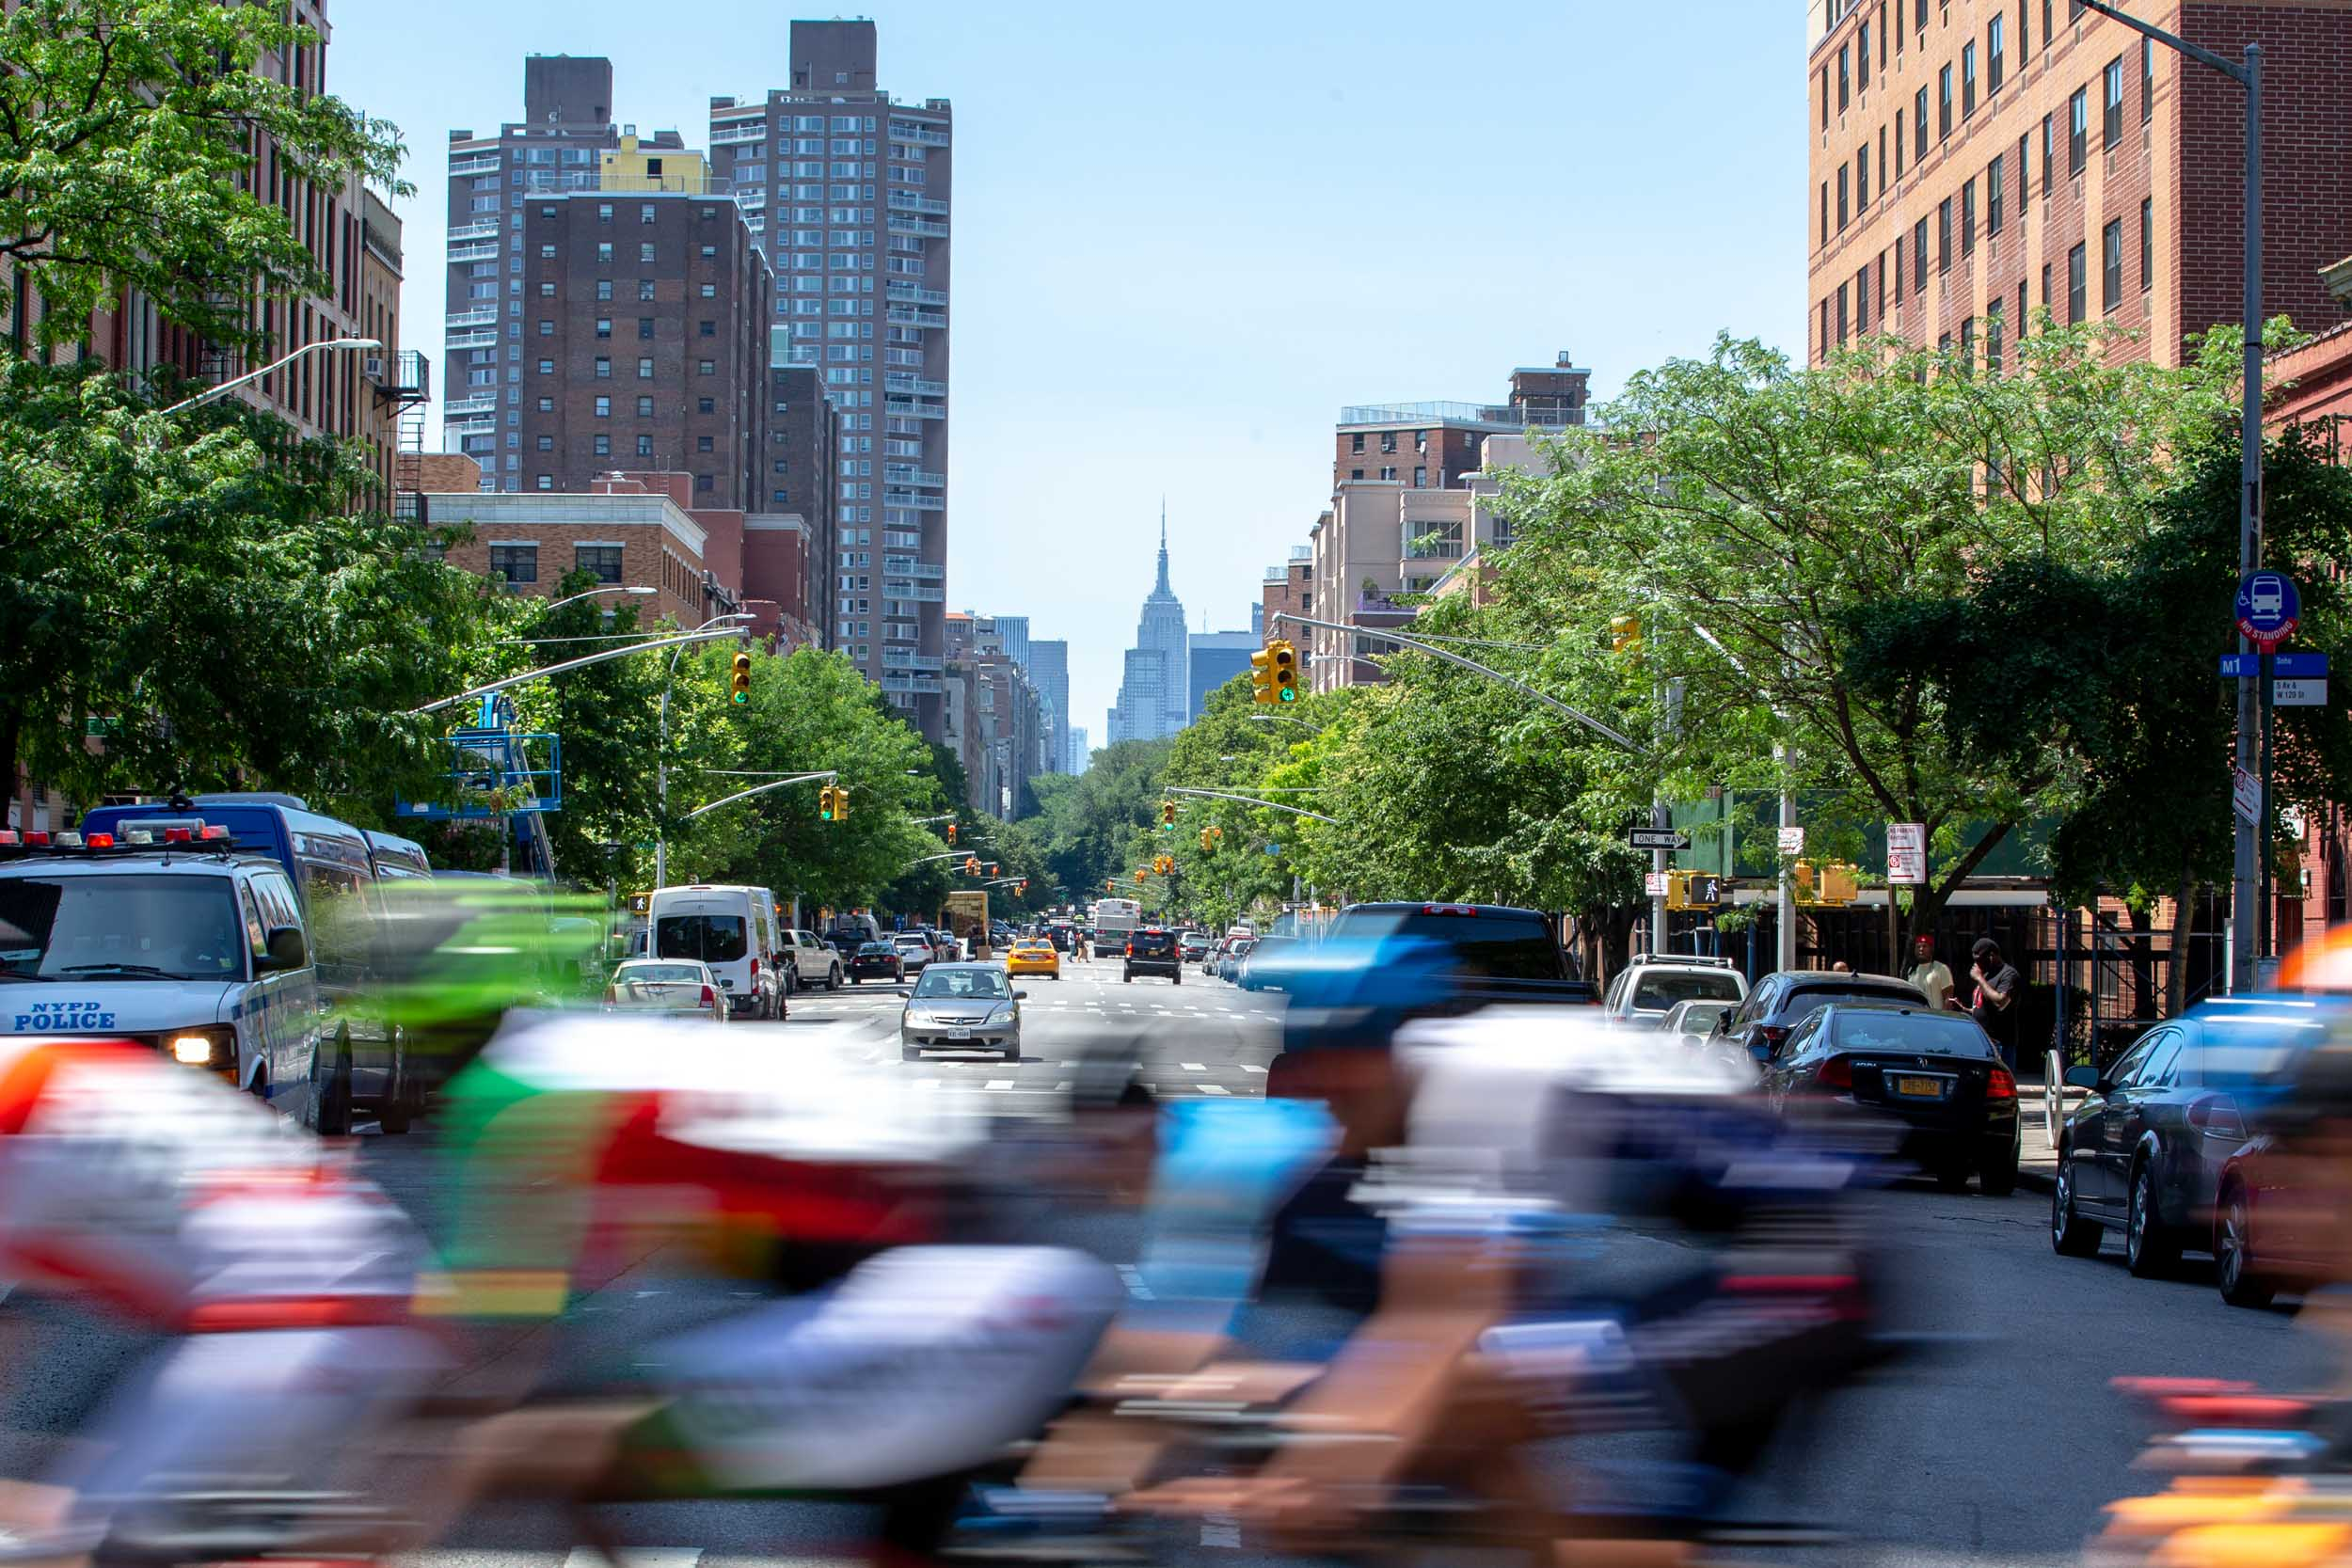 Harlem_17JUNE2018_BicycleRacingPictures_1.jpg